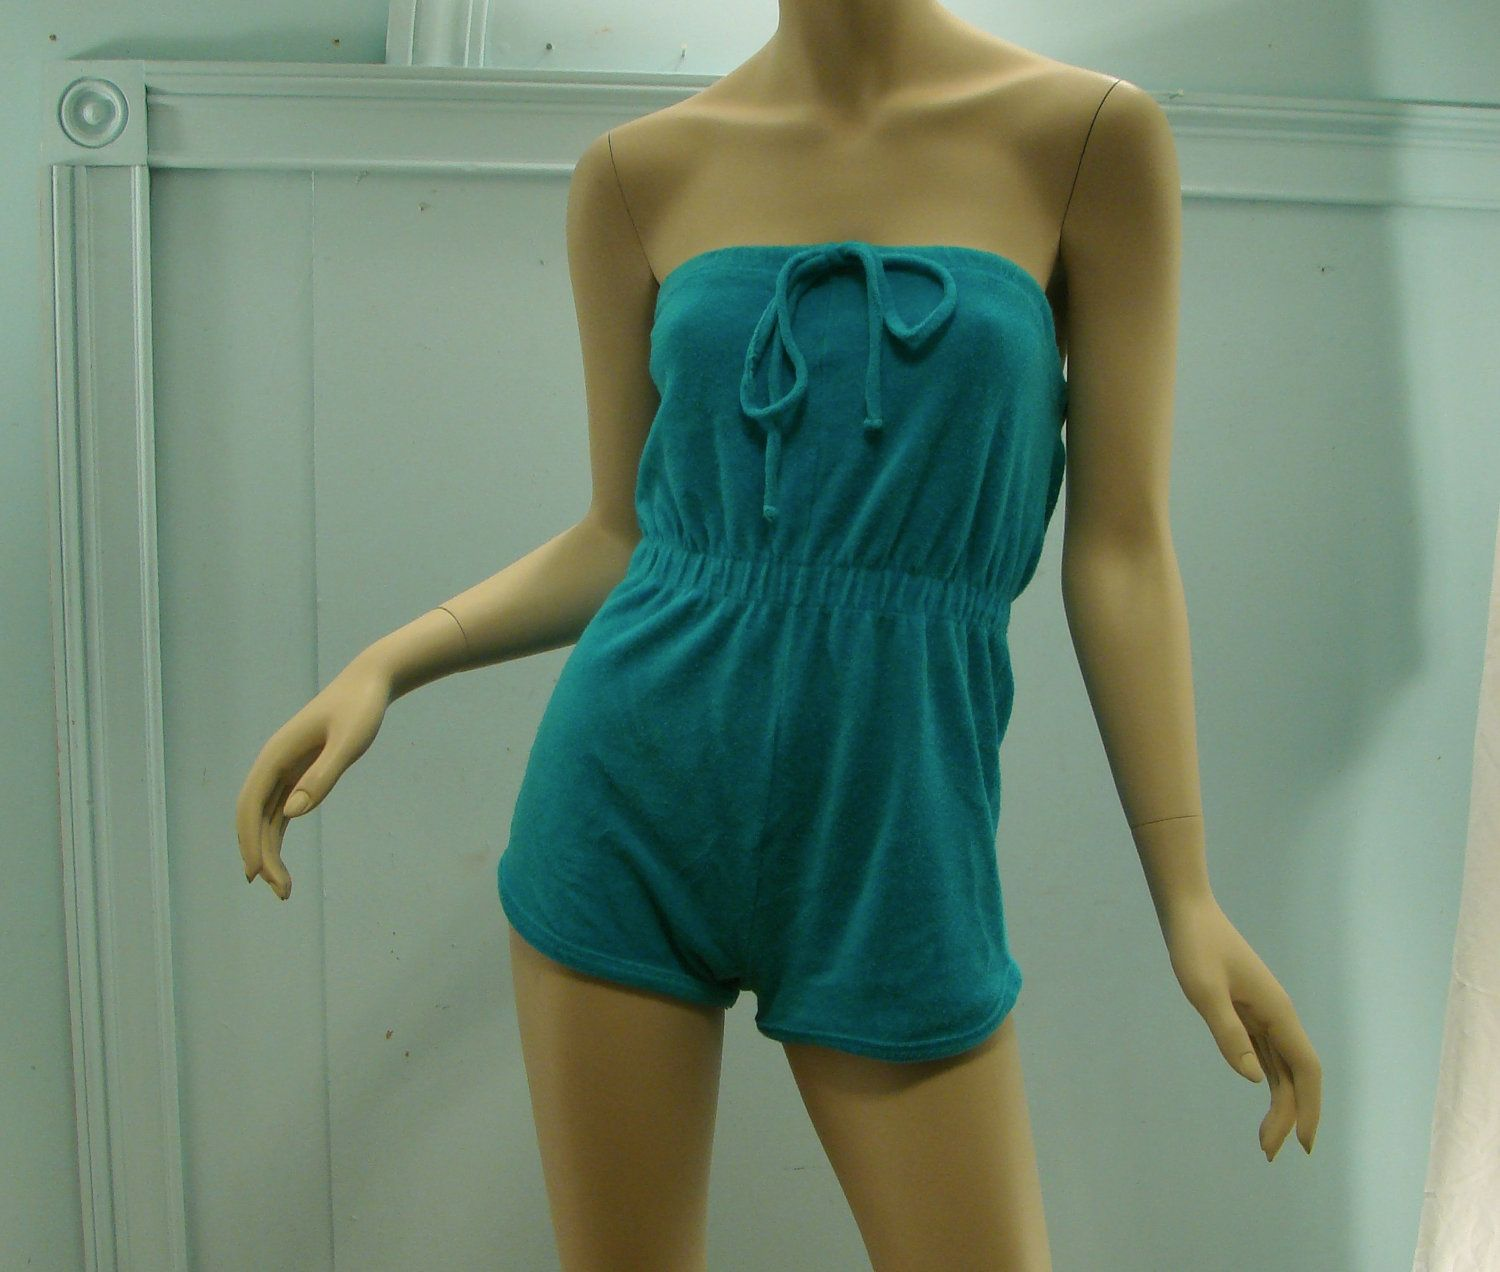 87a3c41b8c Tube-Top Shorts...the height of summer fashion in the 70s LOL I loved  these! so comfy